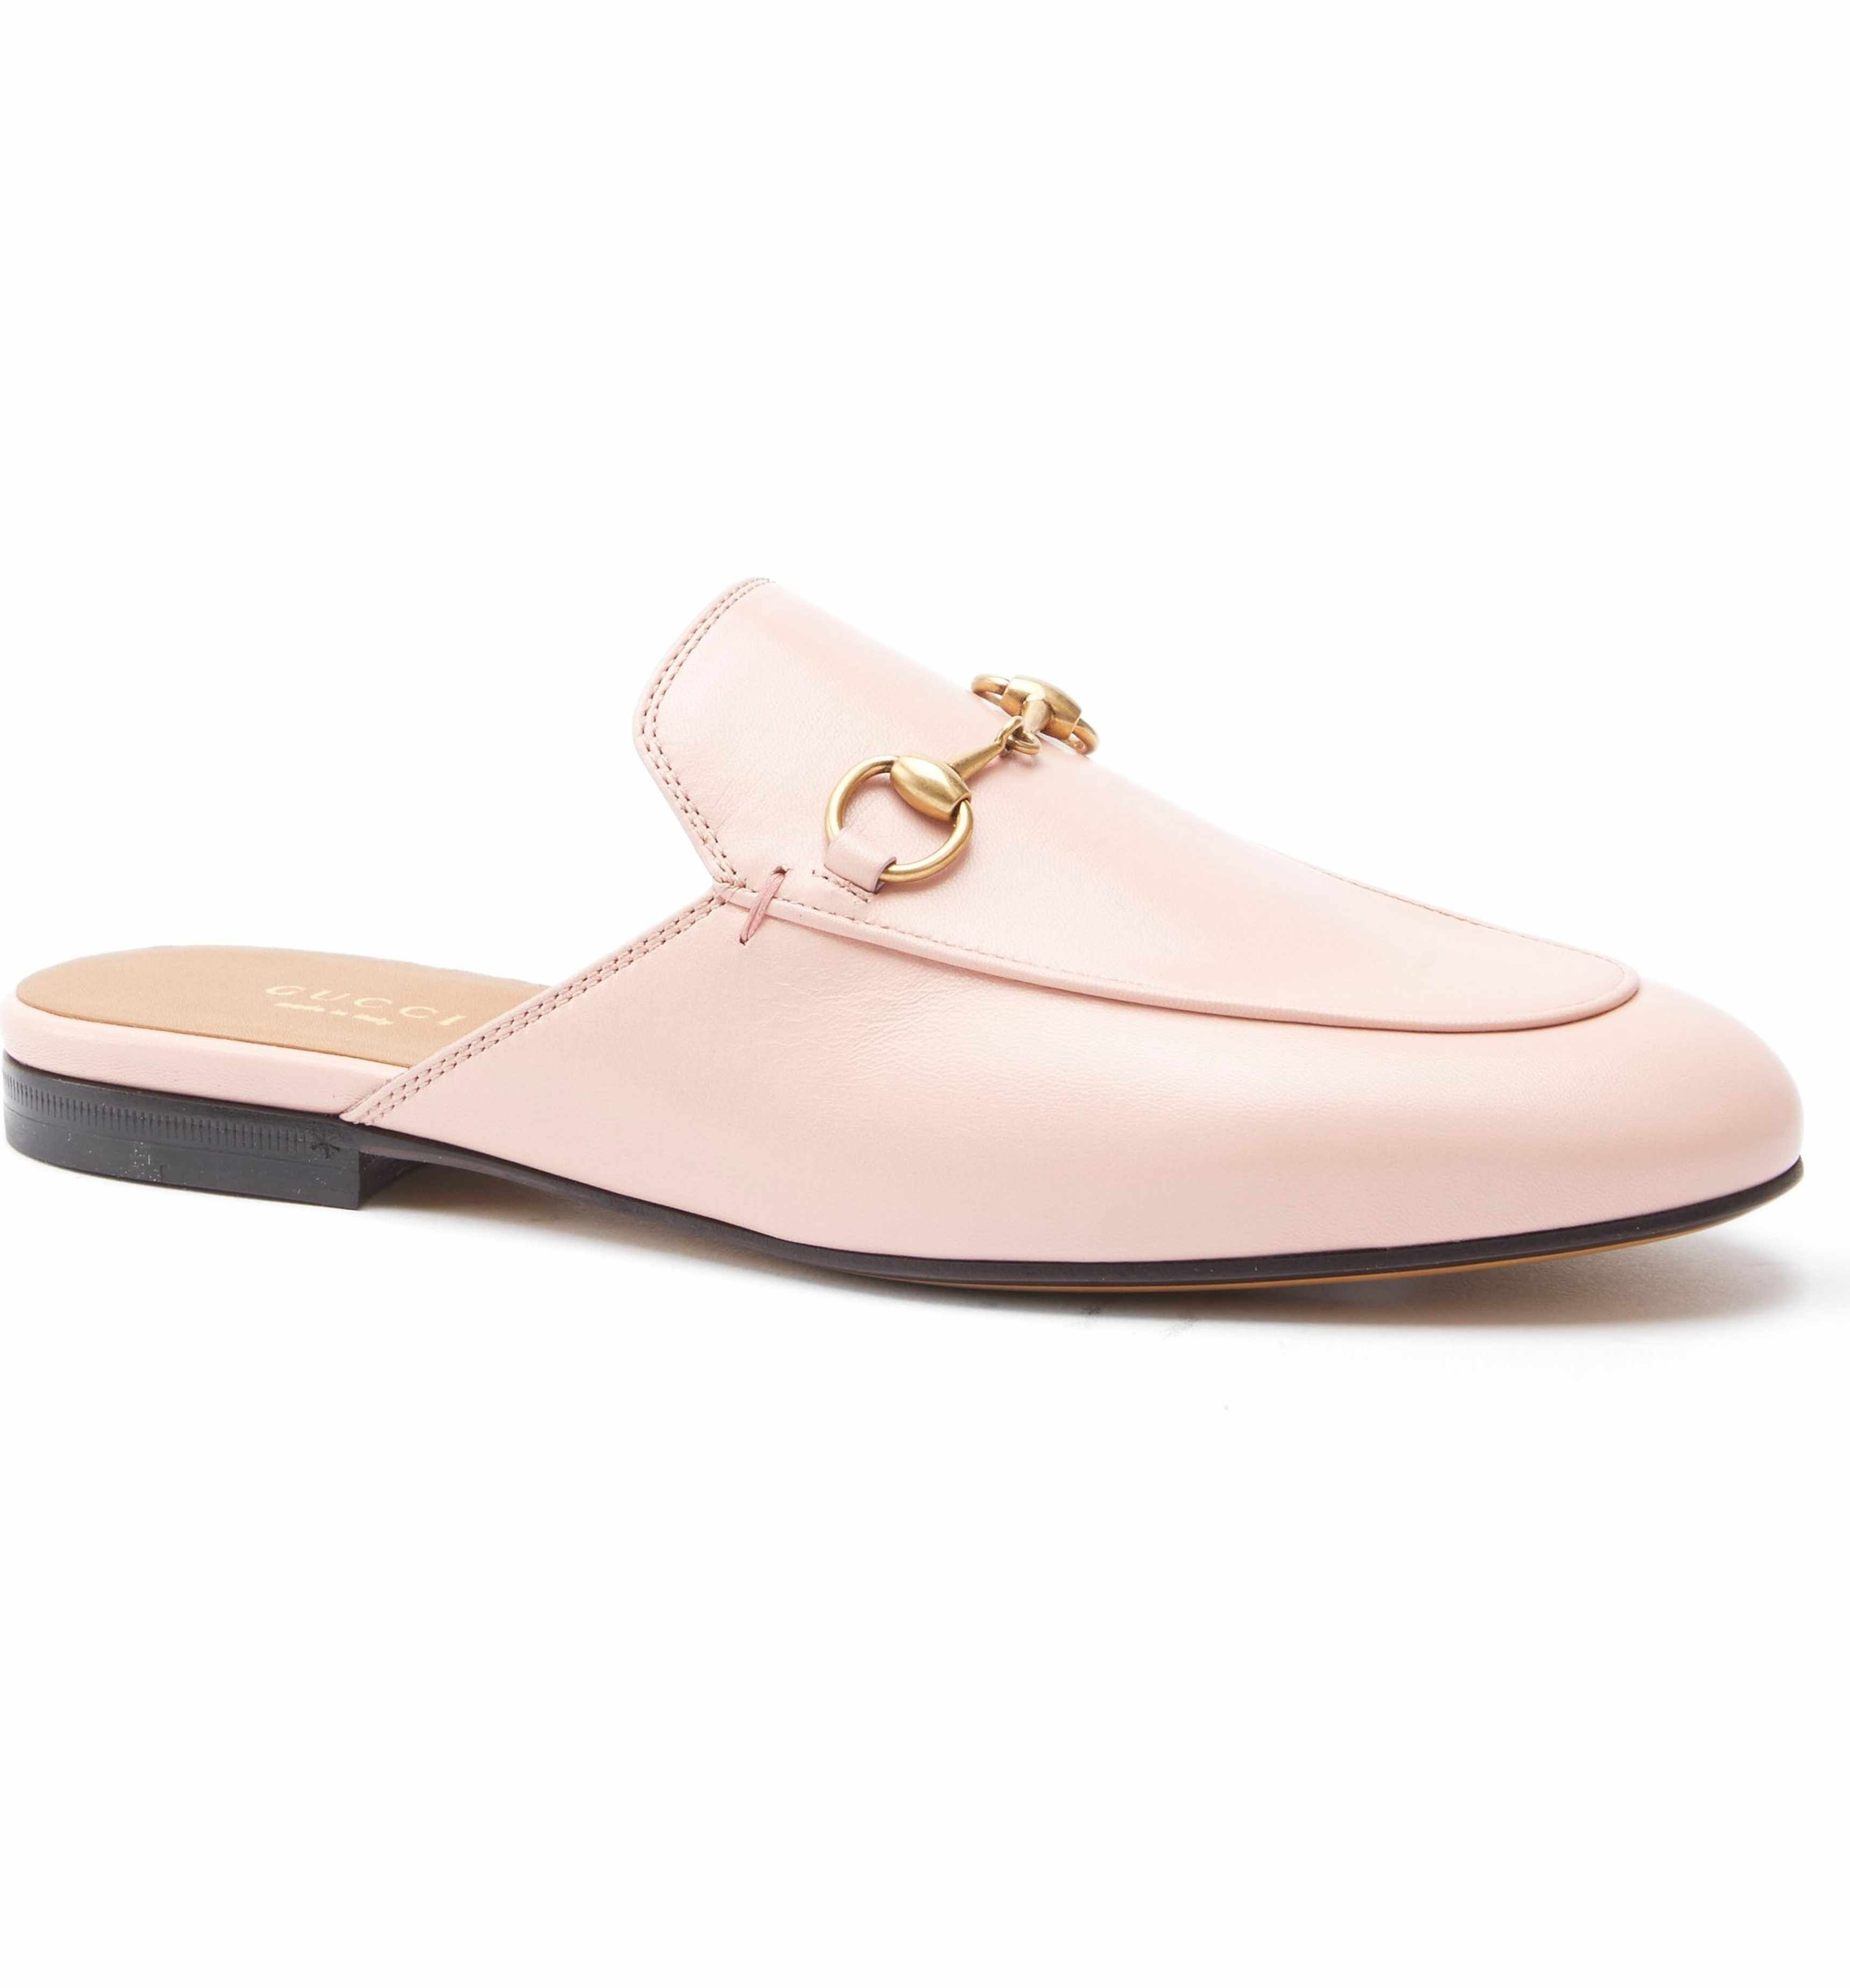 9f6c849592c Any color Main Image - Gucci Princetown Loafer Mule (Women ...